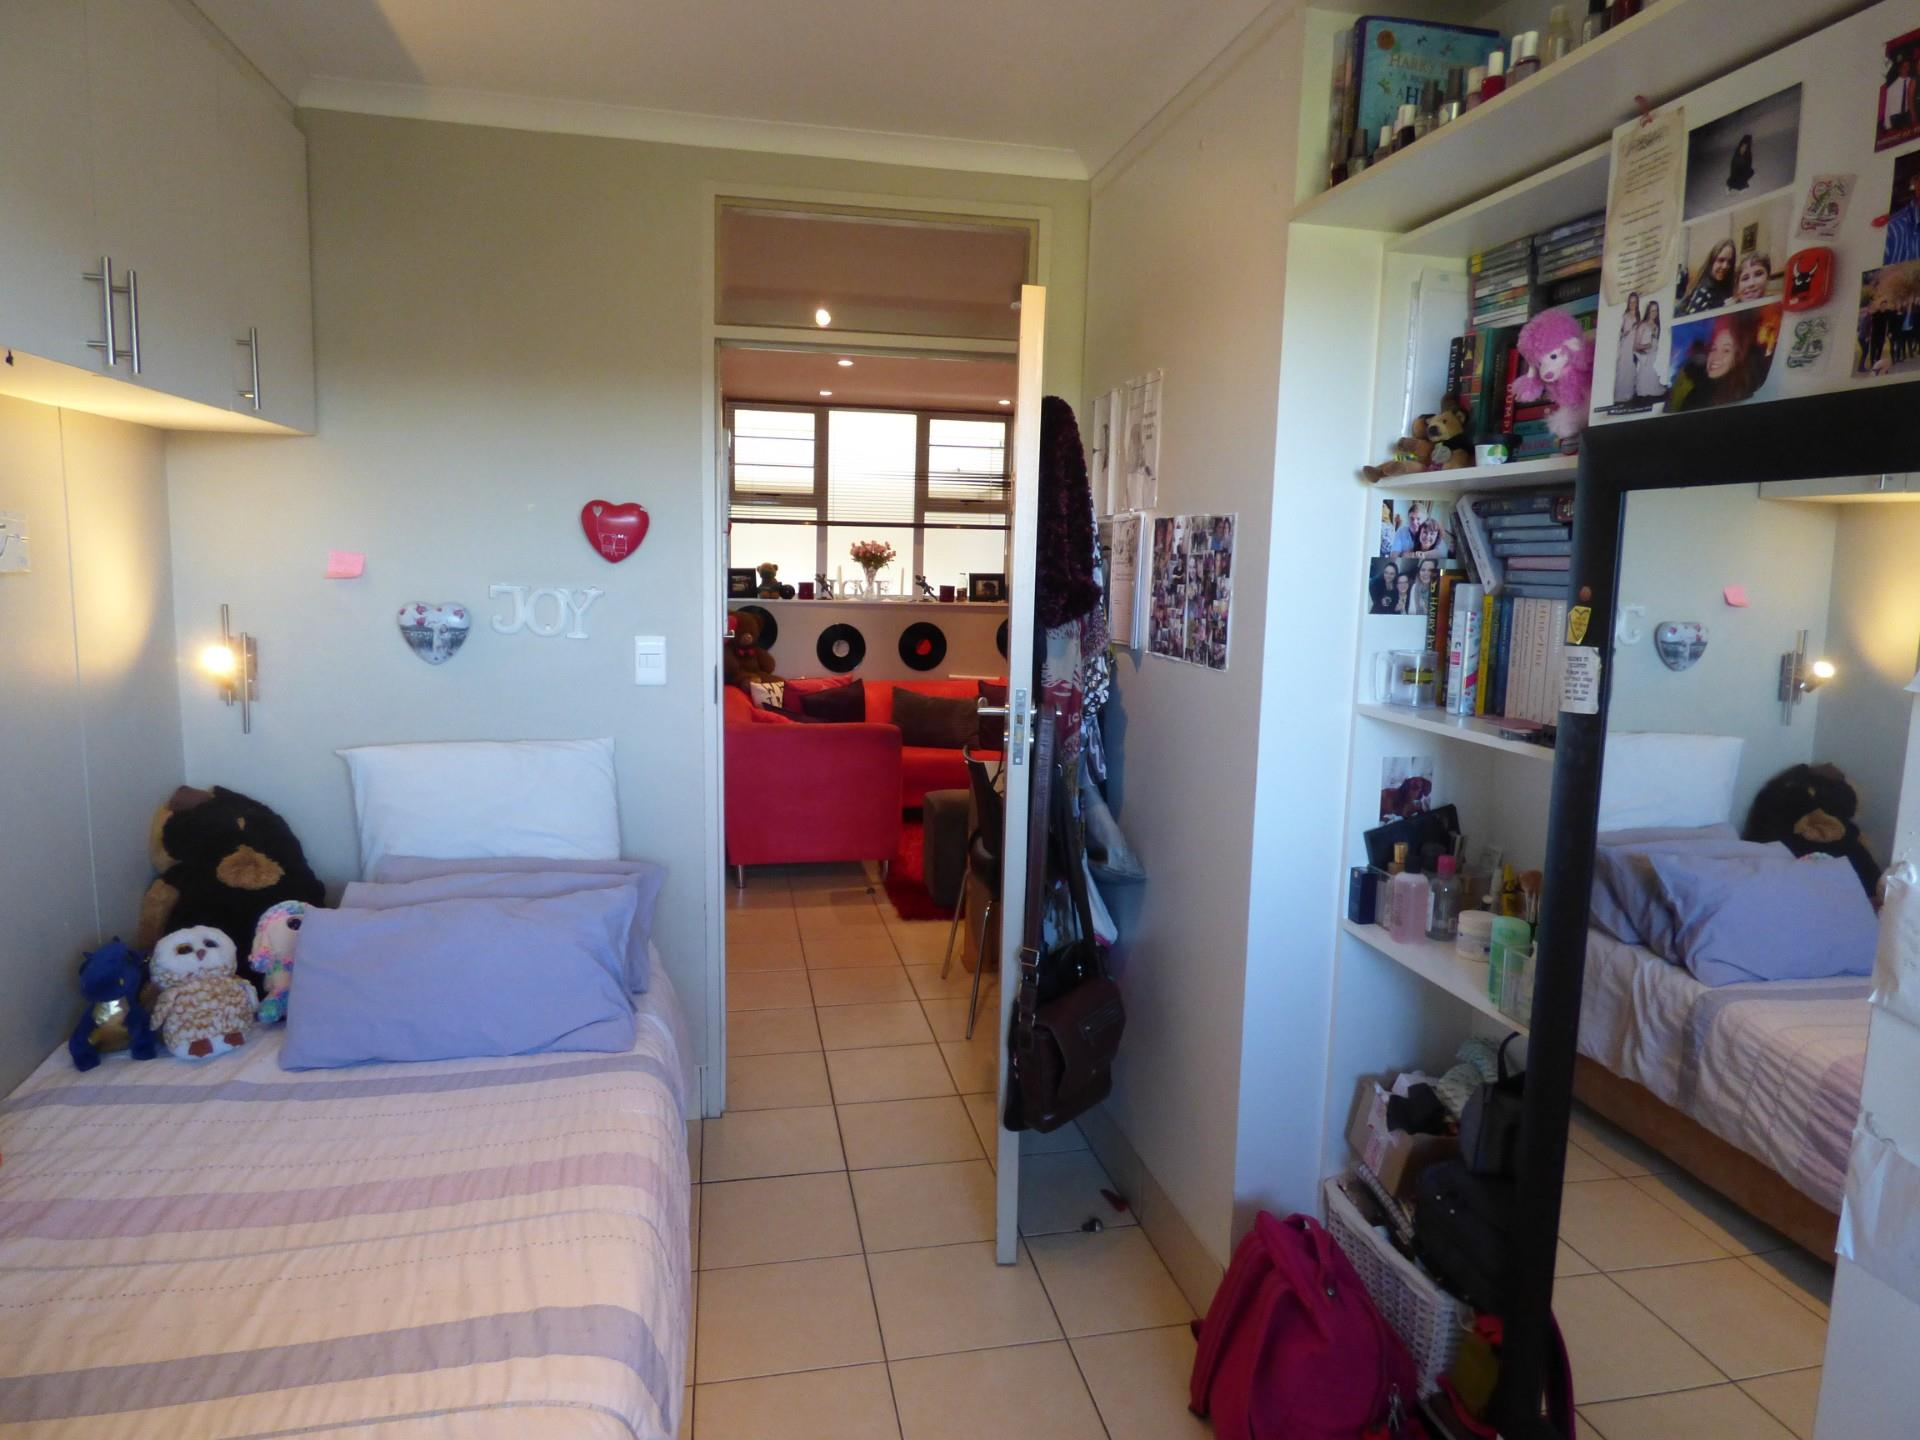 2 Bedroom Apartment / Flat For Sale in Universitas